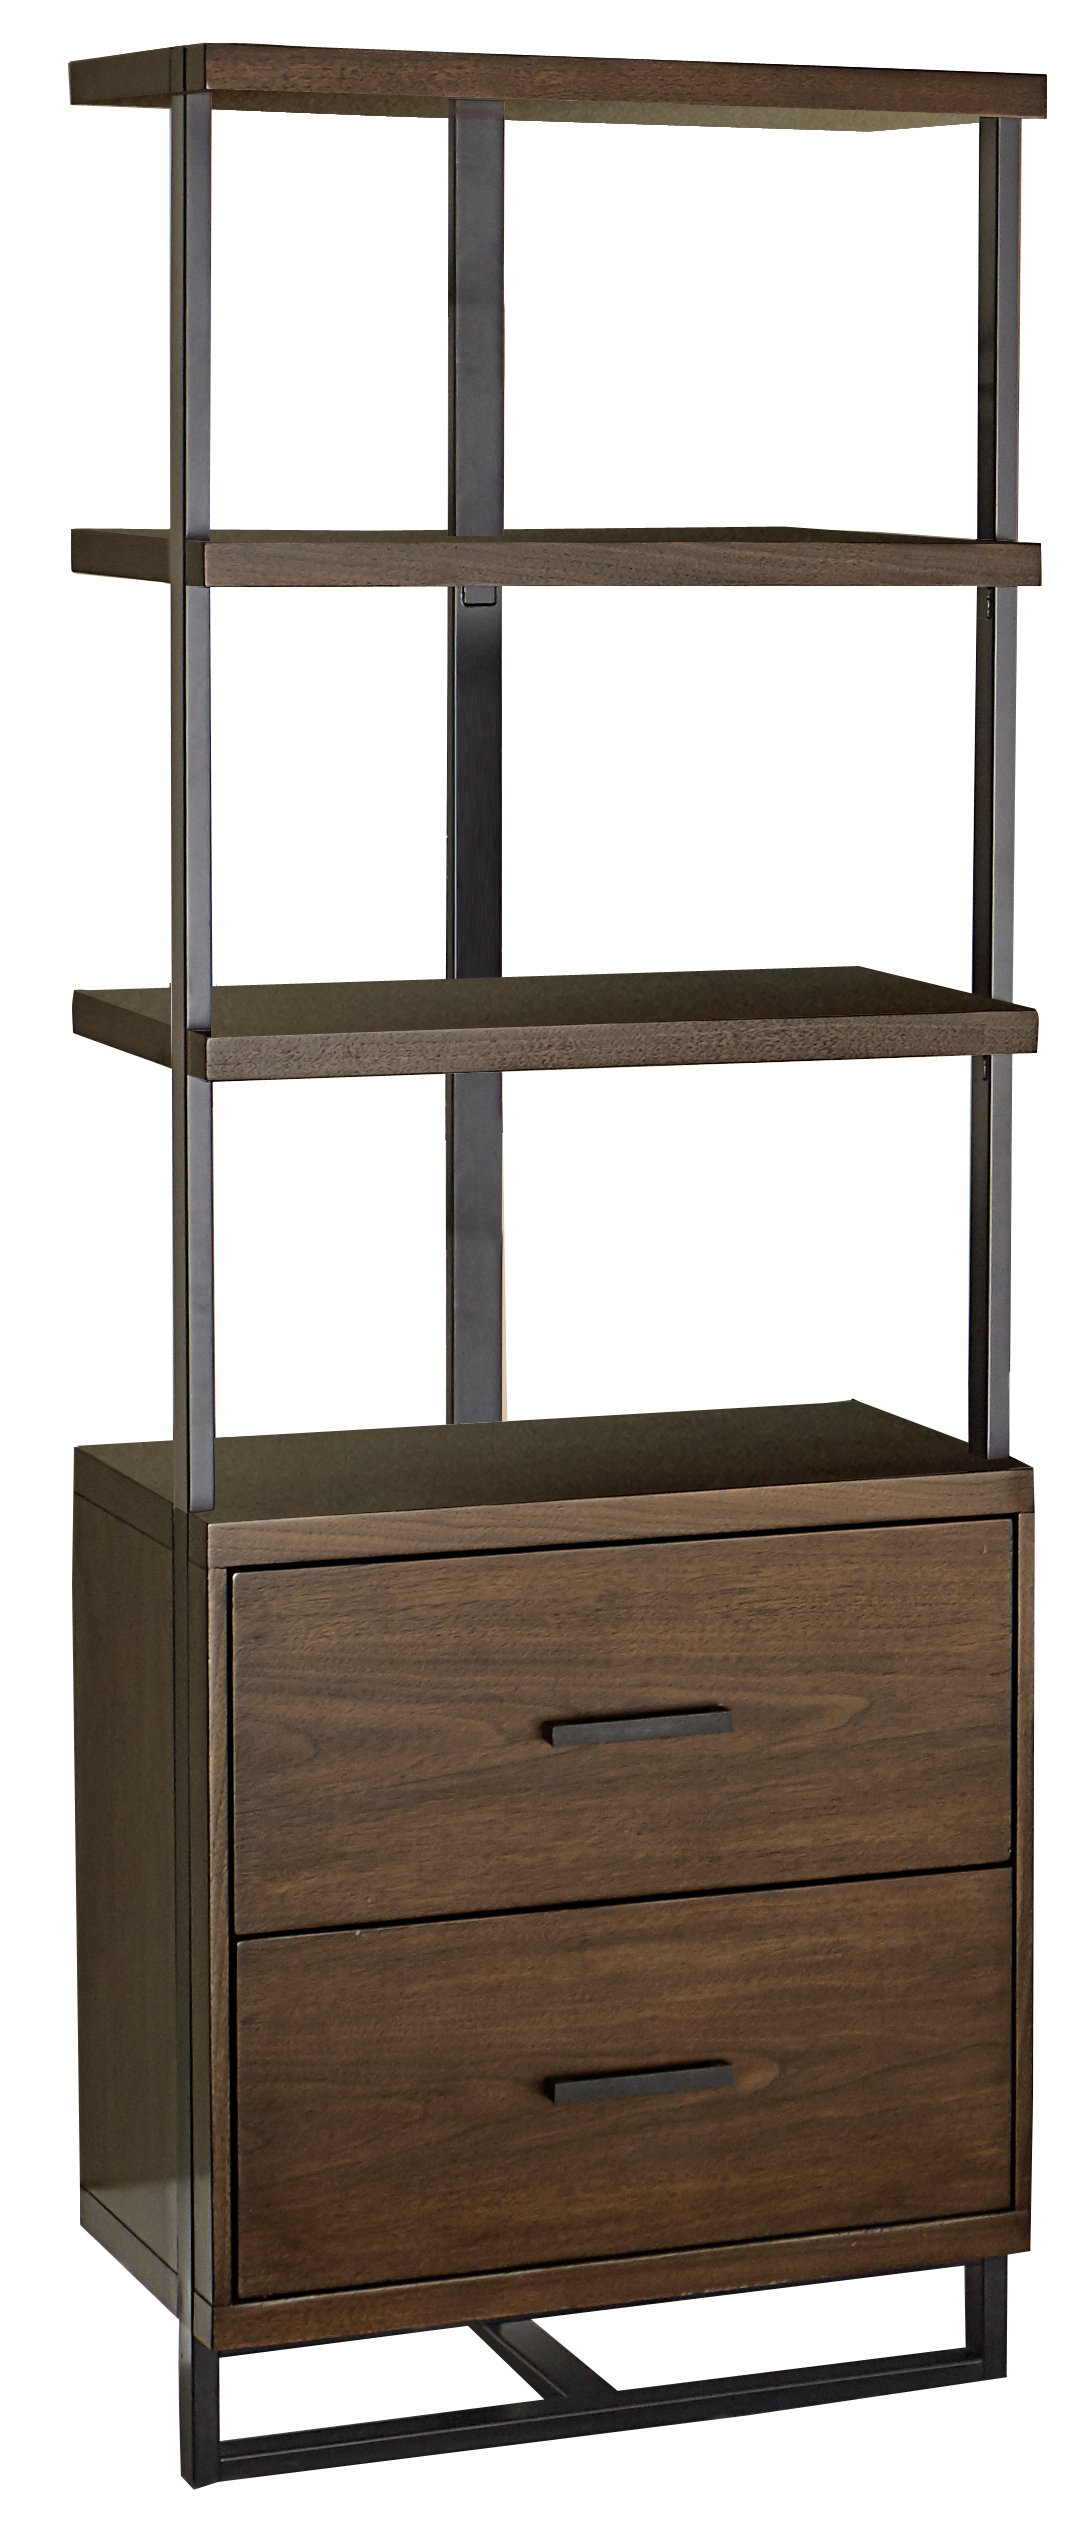 Homelegance Lexicon District 69'' Shelf with Metal Frame, Brown Walnut